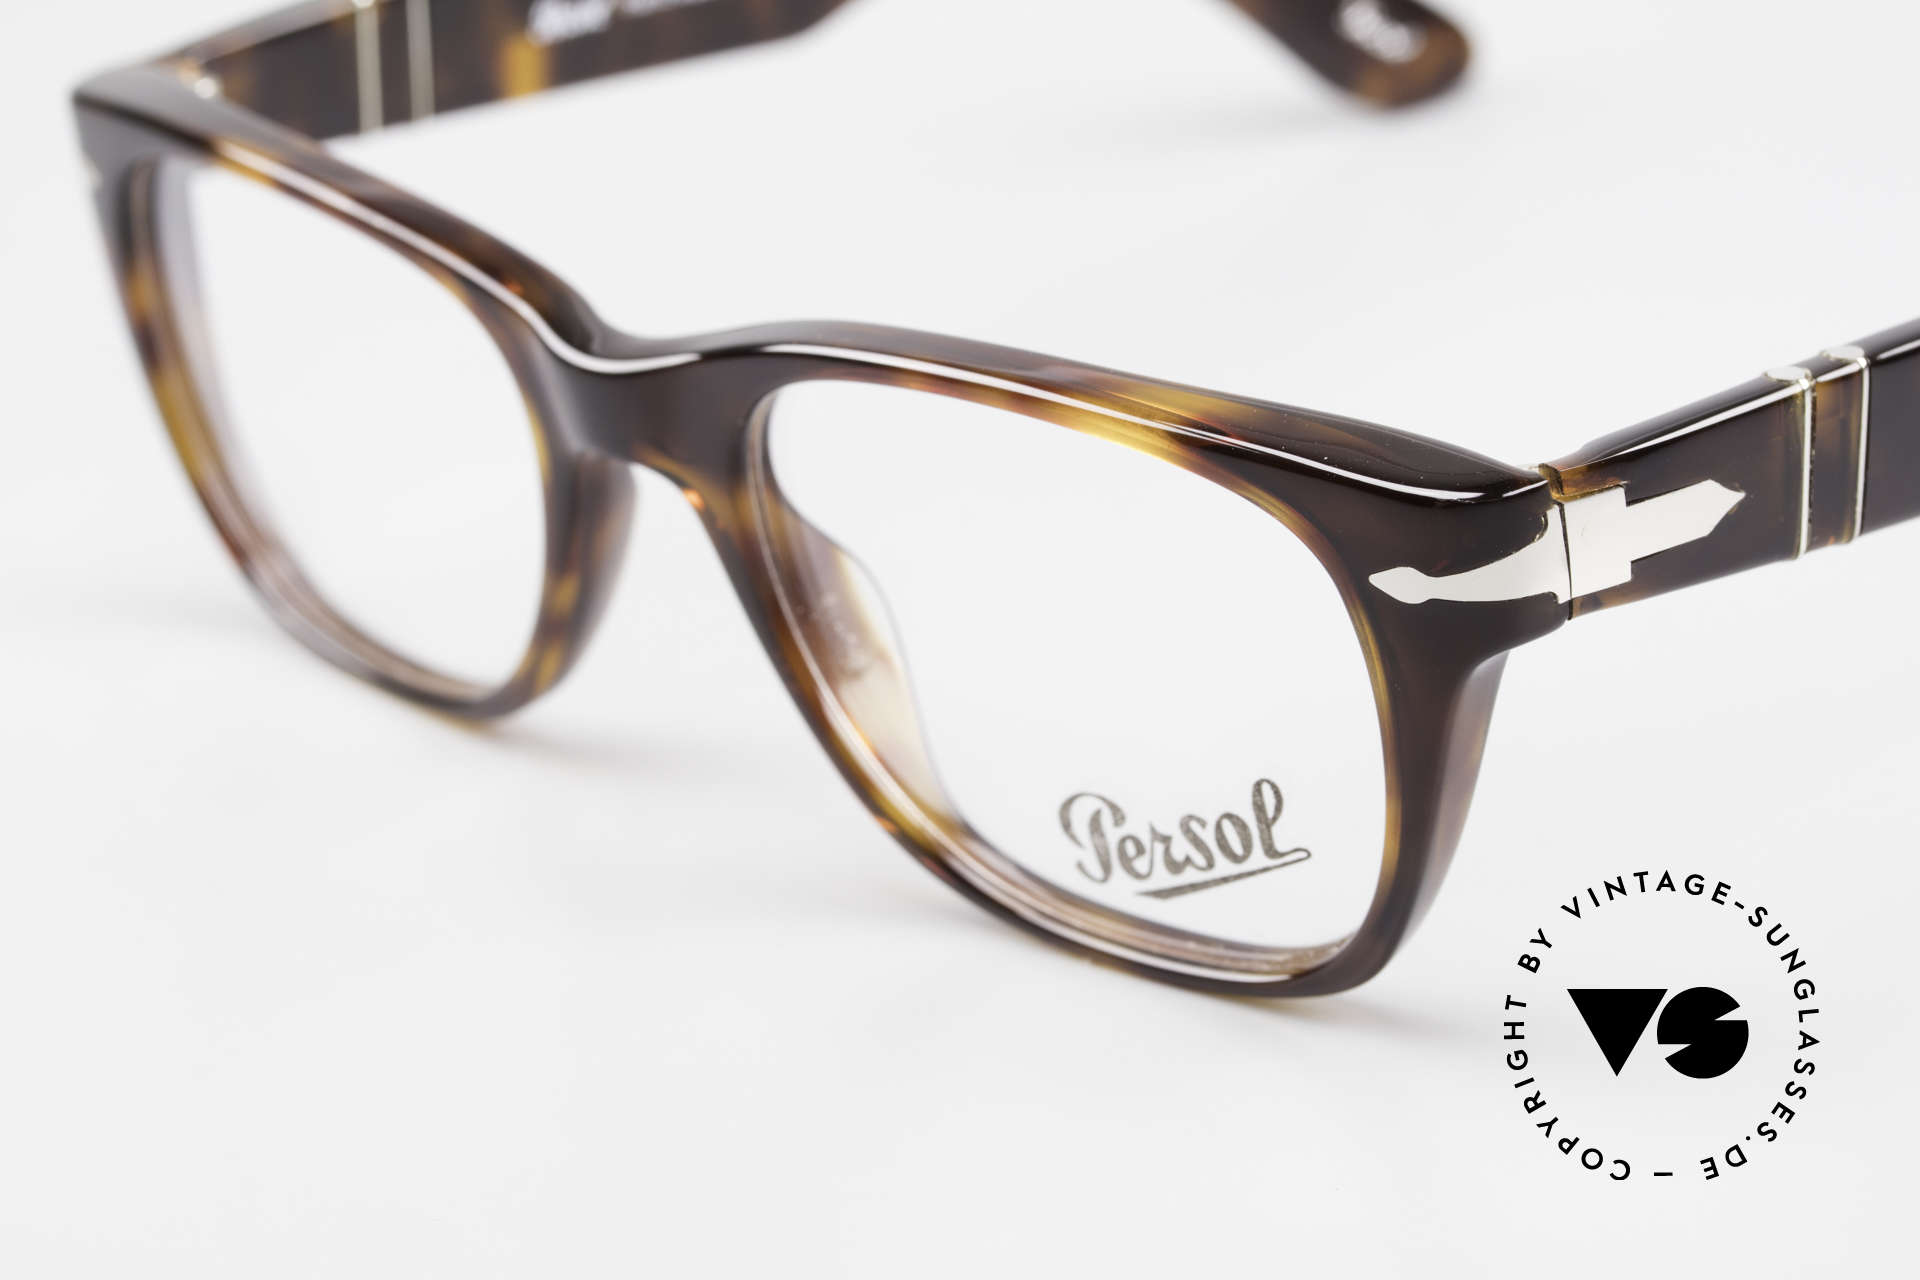 Persol 3039 Timeless Designer Eyeglasses, well, this re-issue is nicely made & in unworn condition, Made for Men and Women